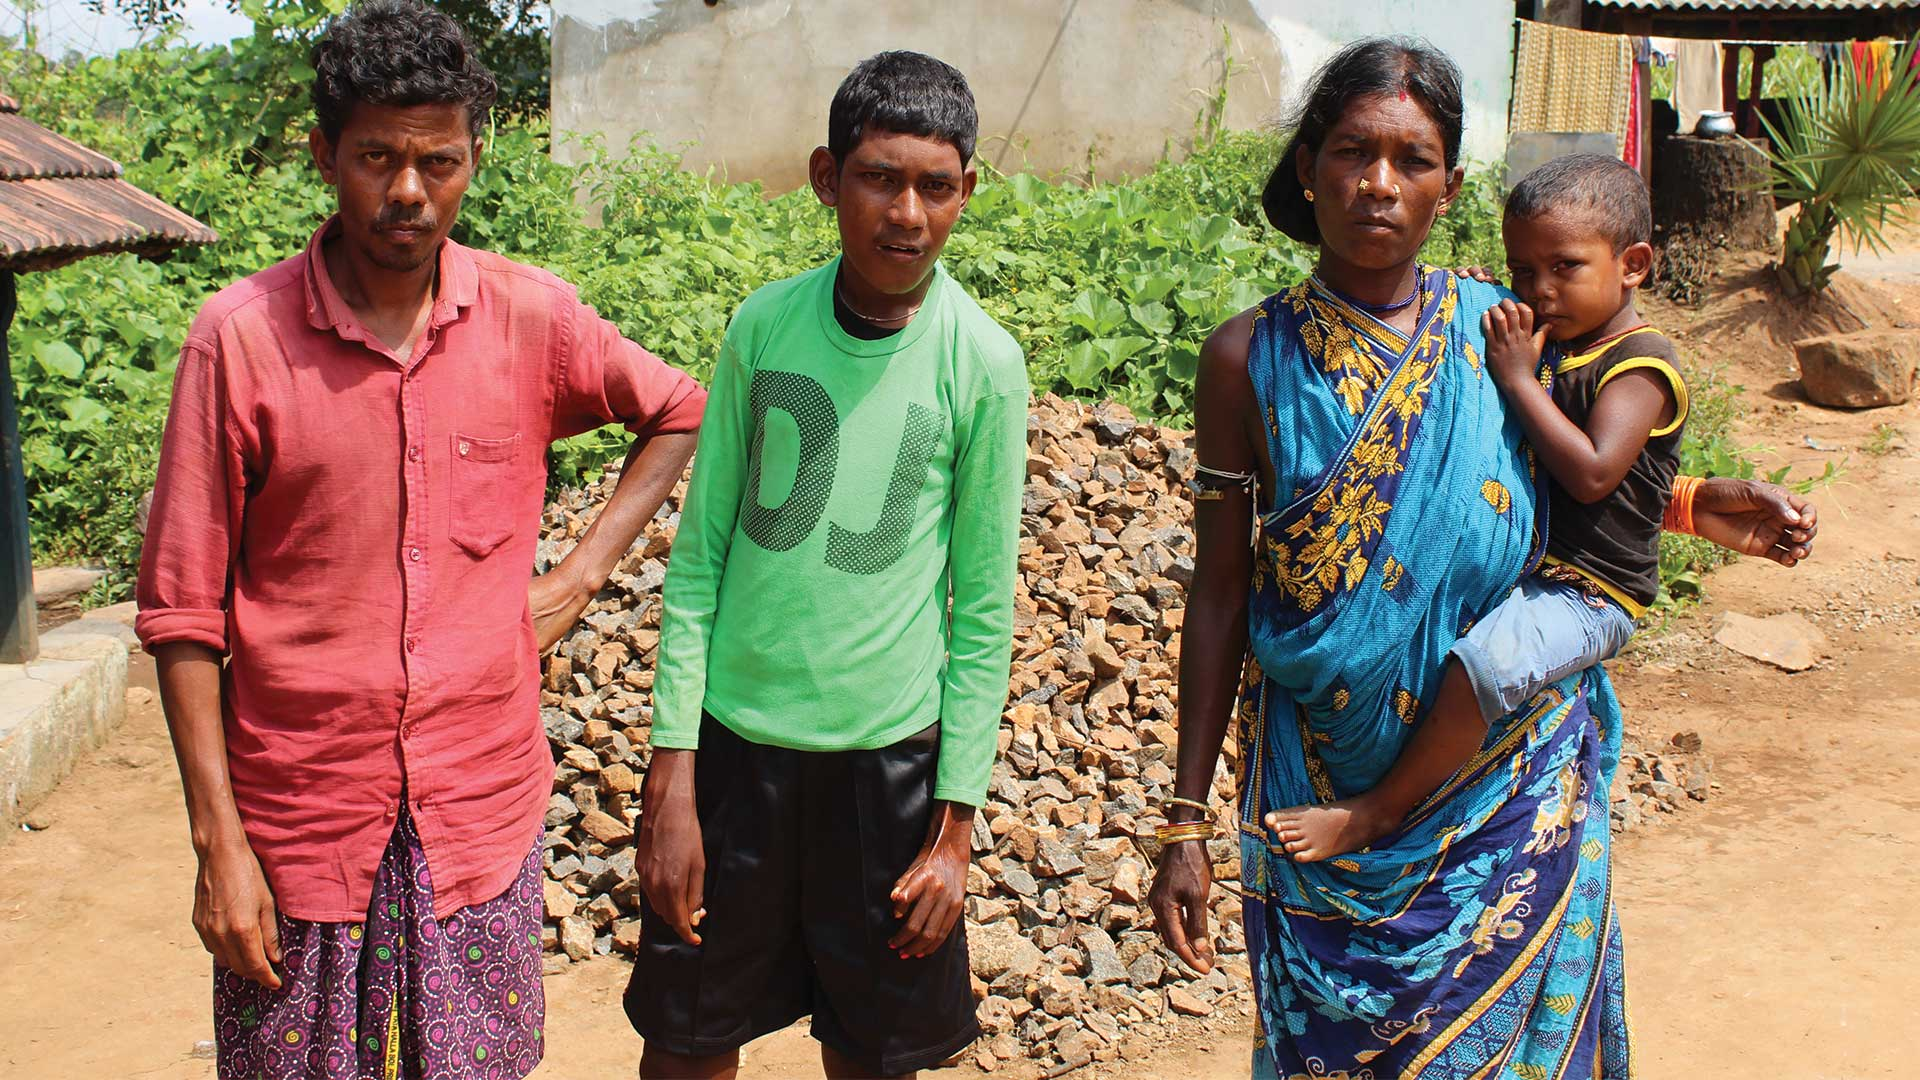 Mother, father, teenage son and baby stood outside in village in India